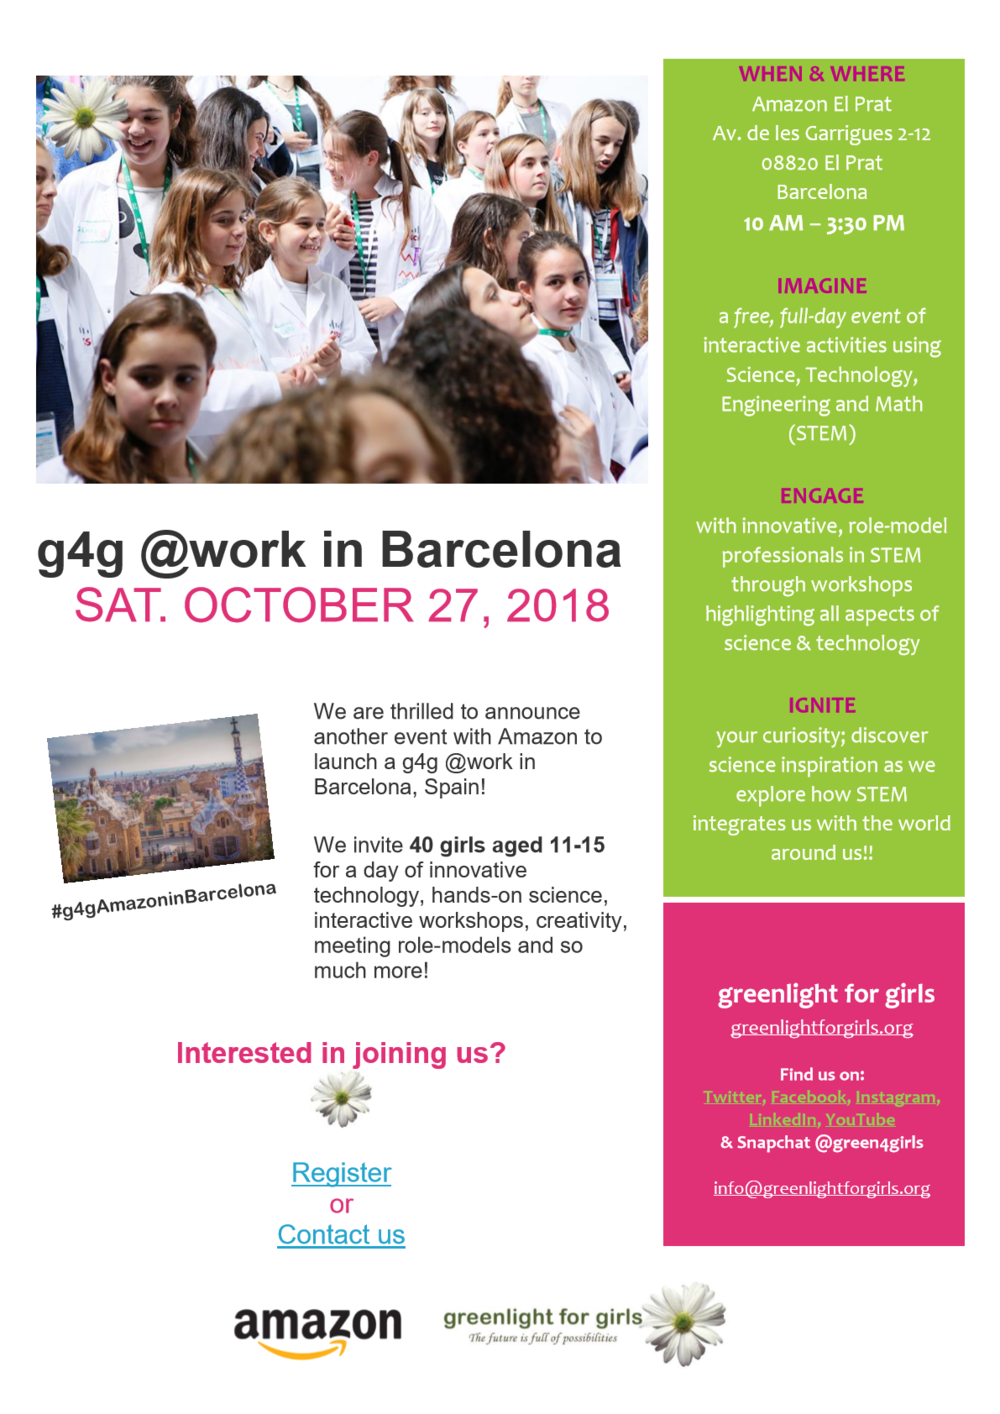 g4gatwork_Barcelona2018_english.jpg